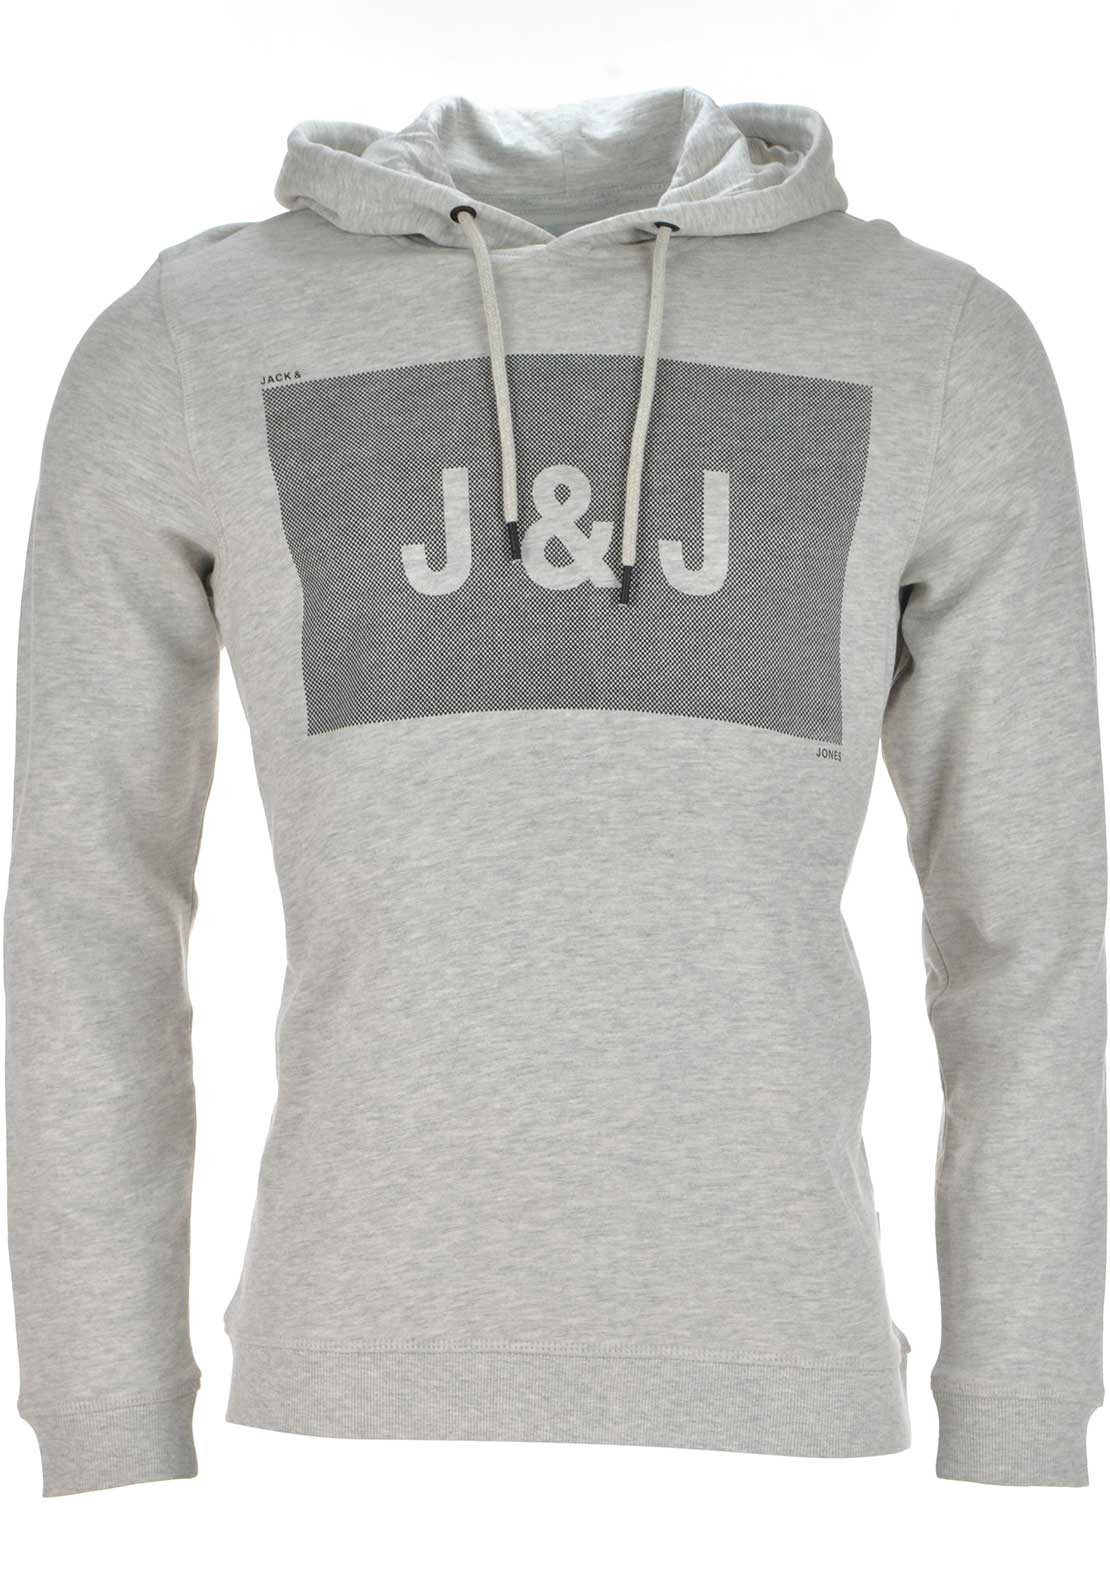 Jack & Jones Take Graphic Print Hoodie Jumper, Pale Grey